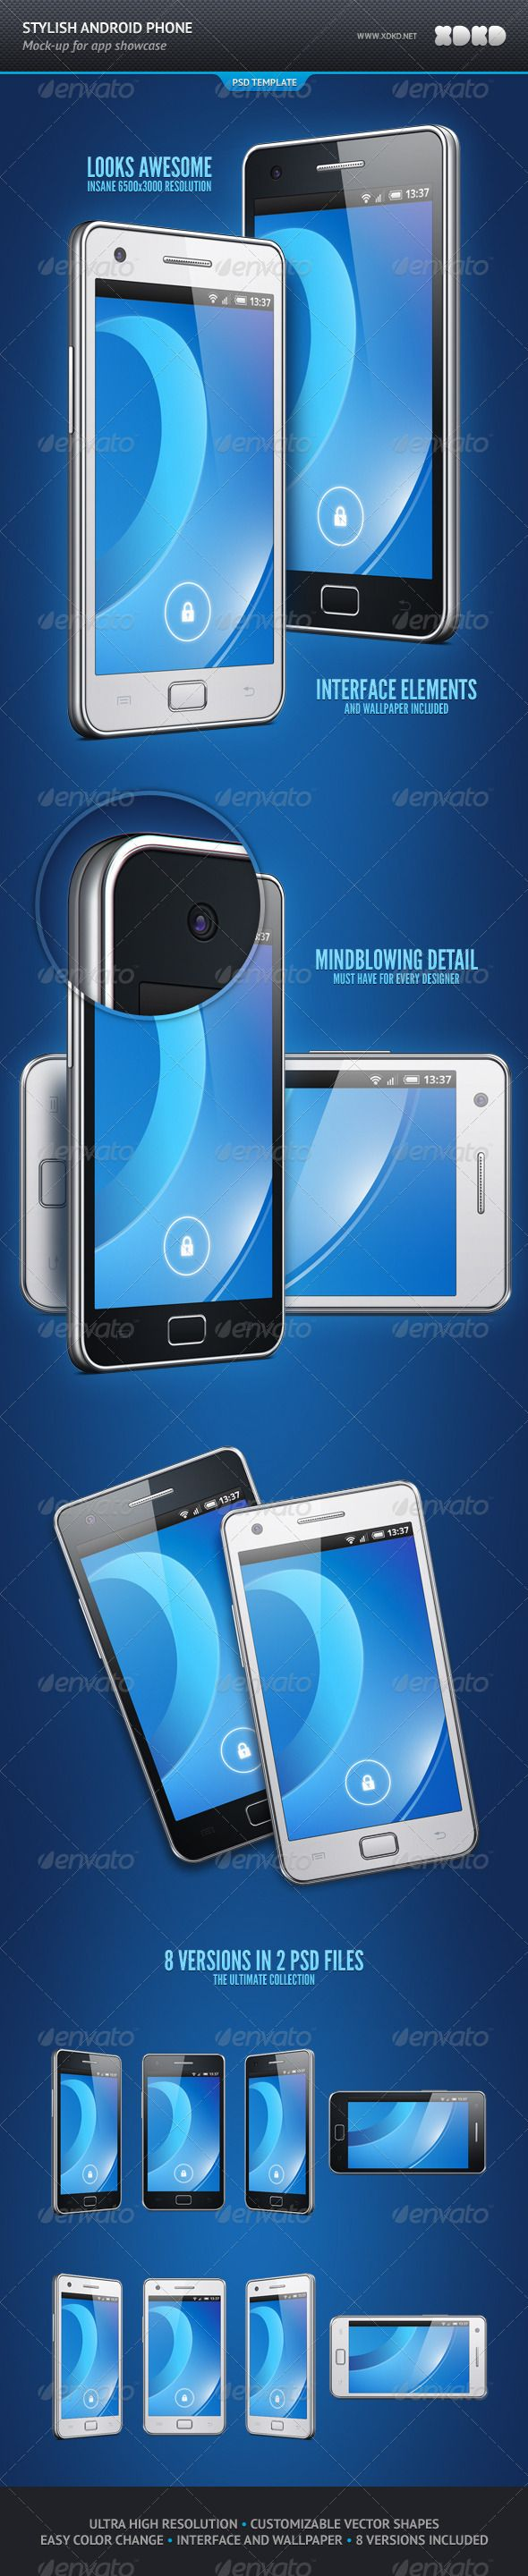 Stylish Android Phone App Showcase Mockup - Mobile Displays http://topfiles.org/list/60yz7he2uu